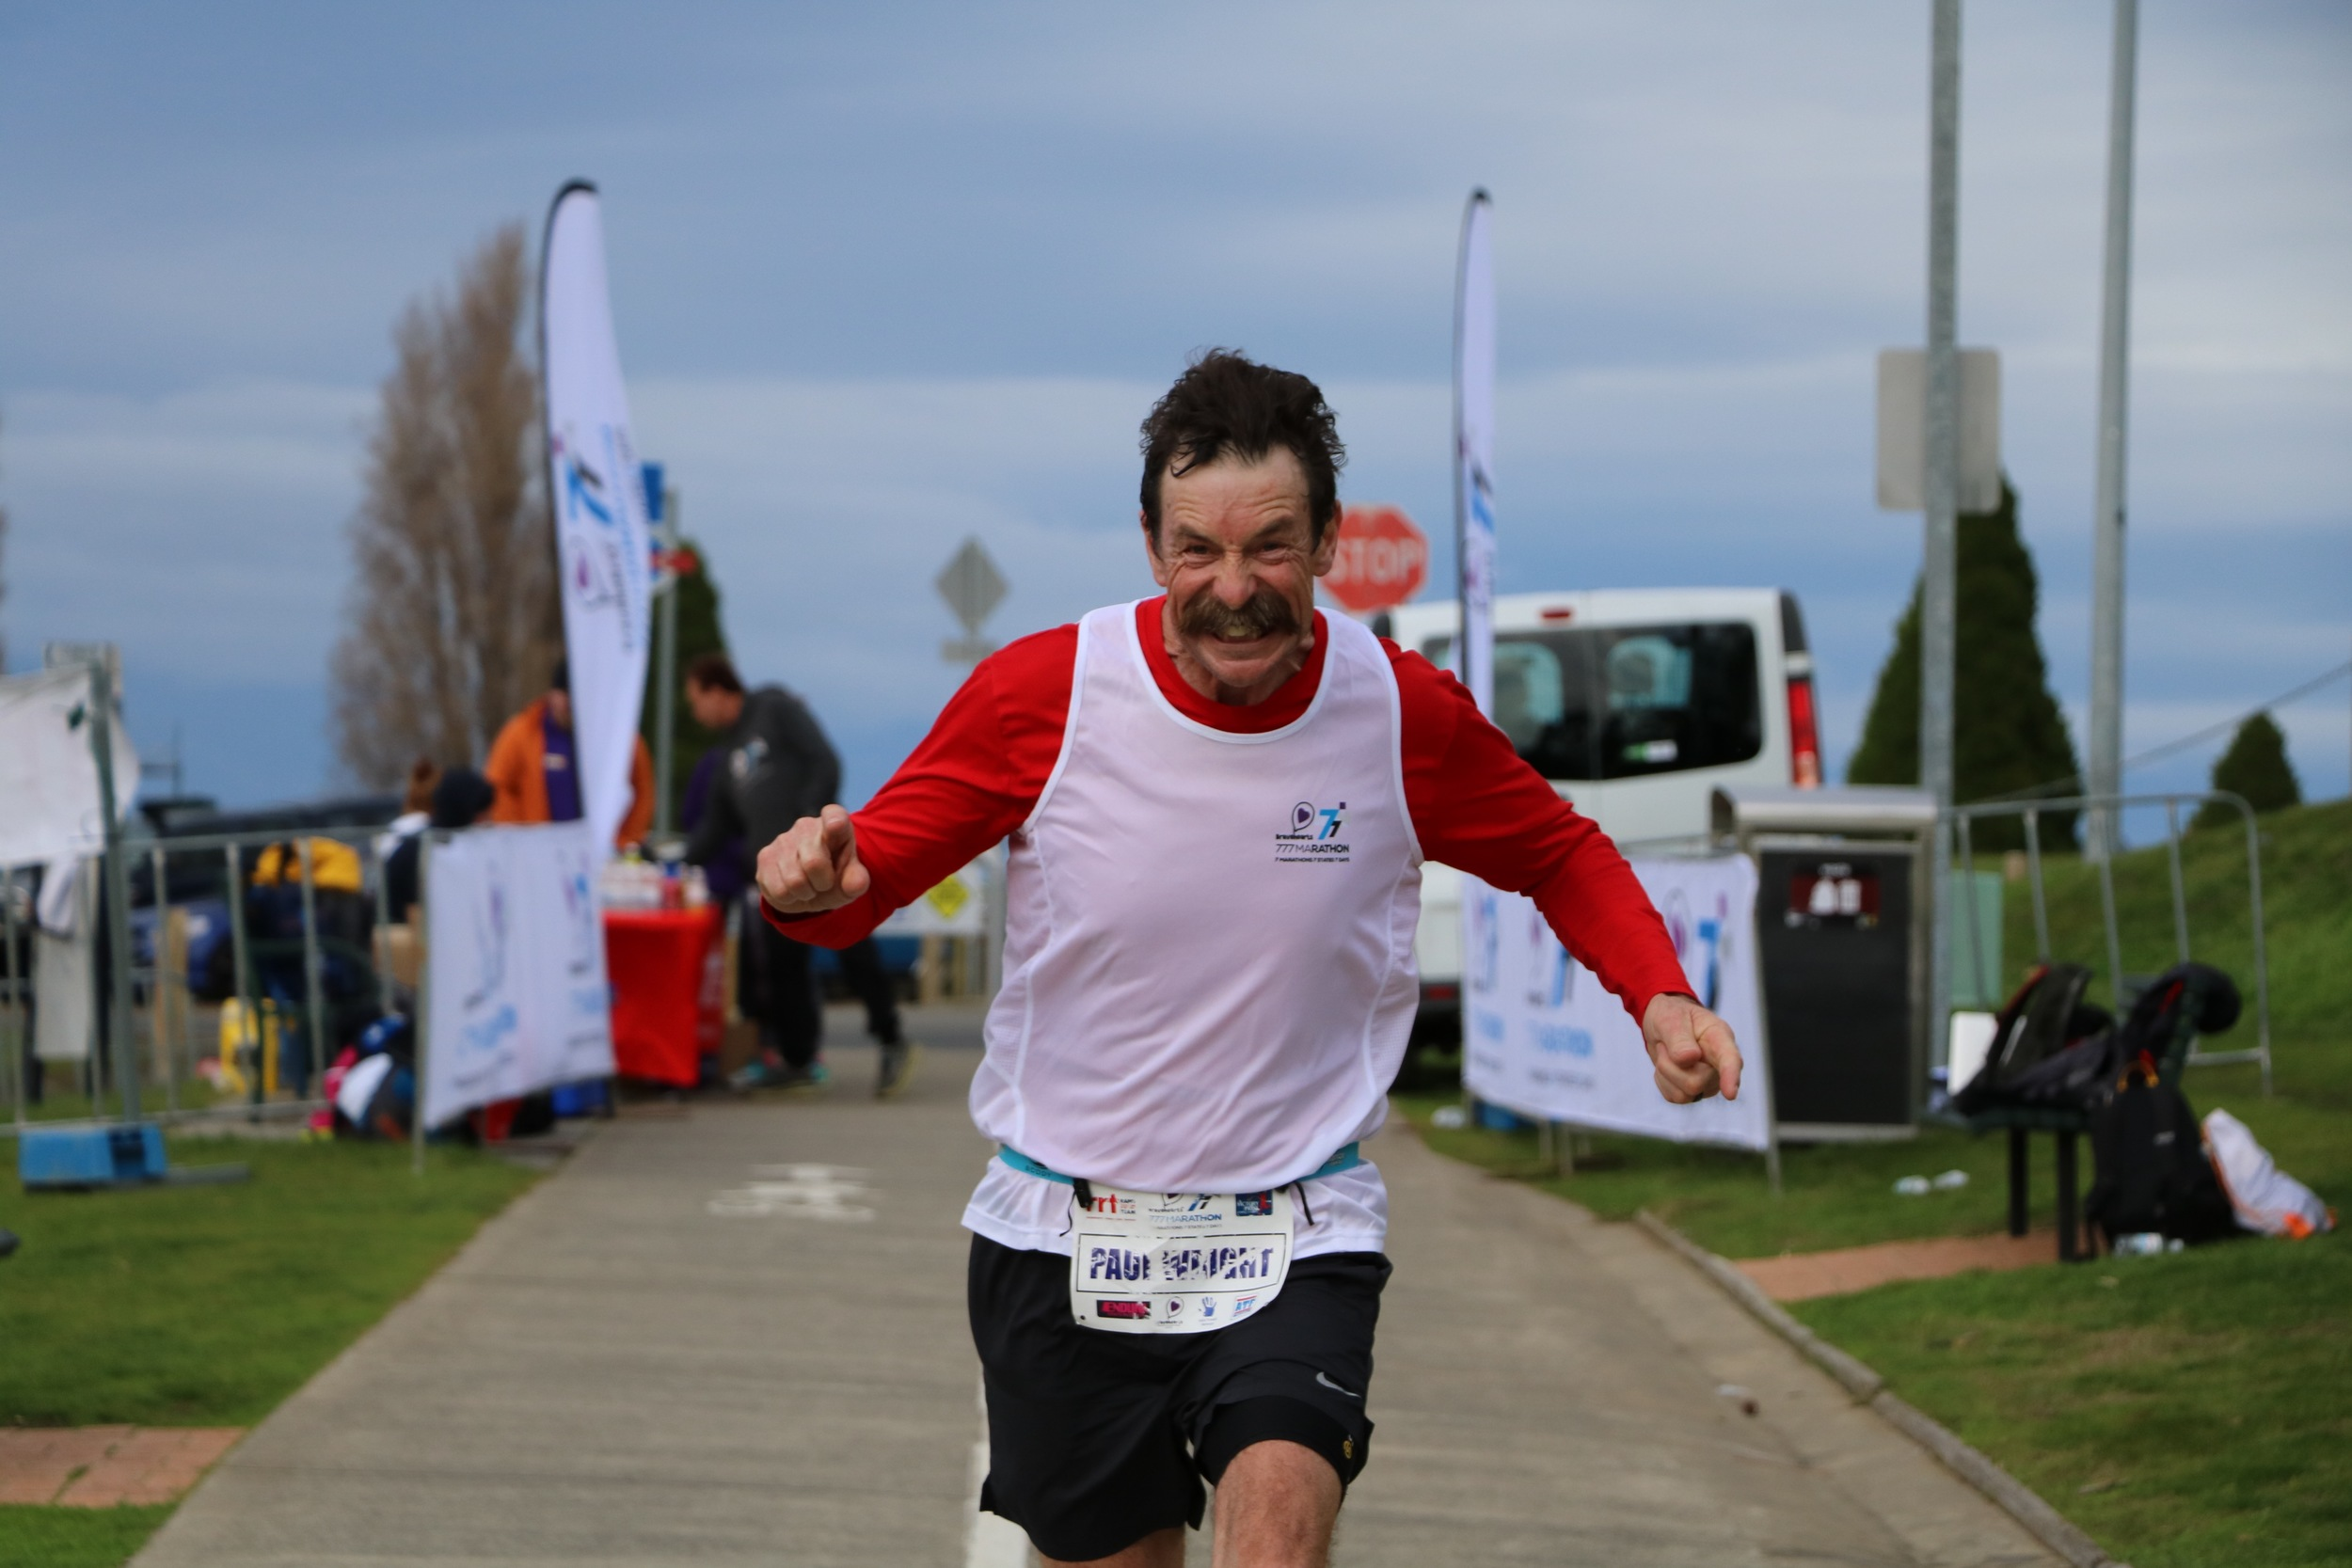 Tasmania's Paul Wright fired up when the Bravehearts 777 landed in chilly Hobart on Day 4.